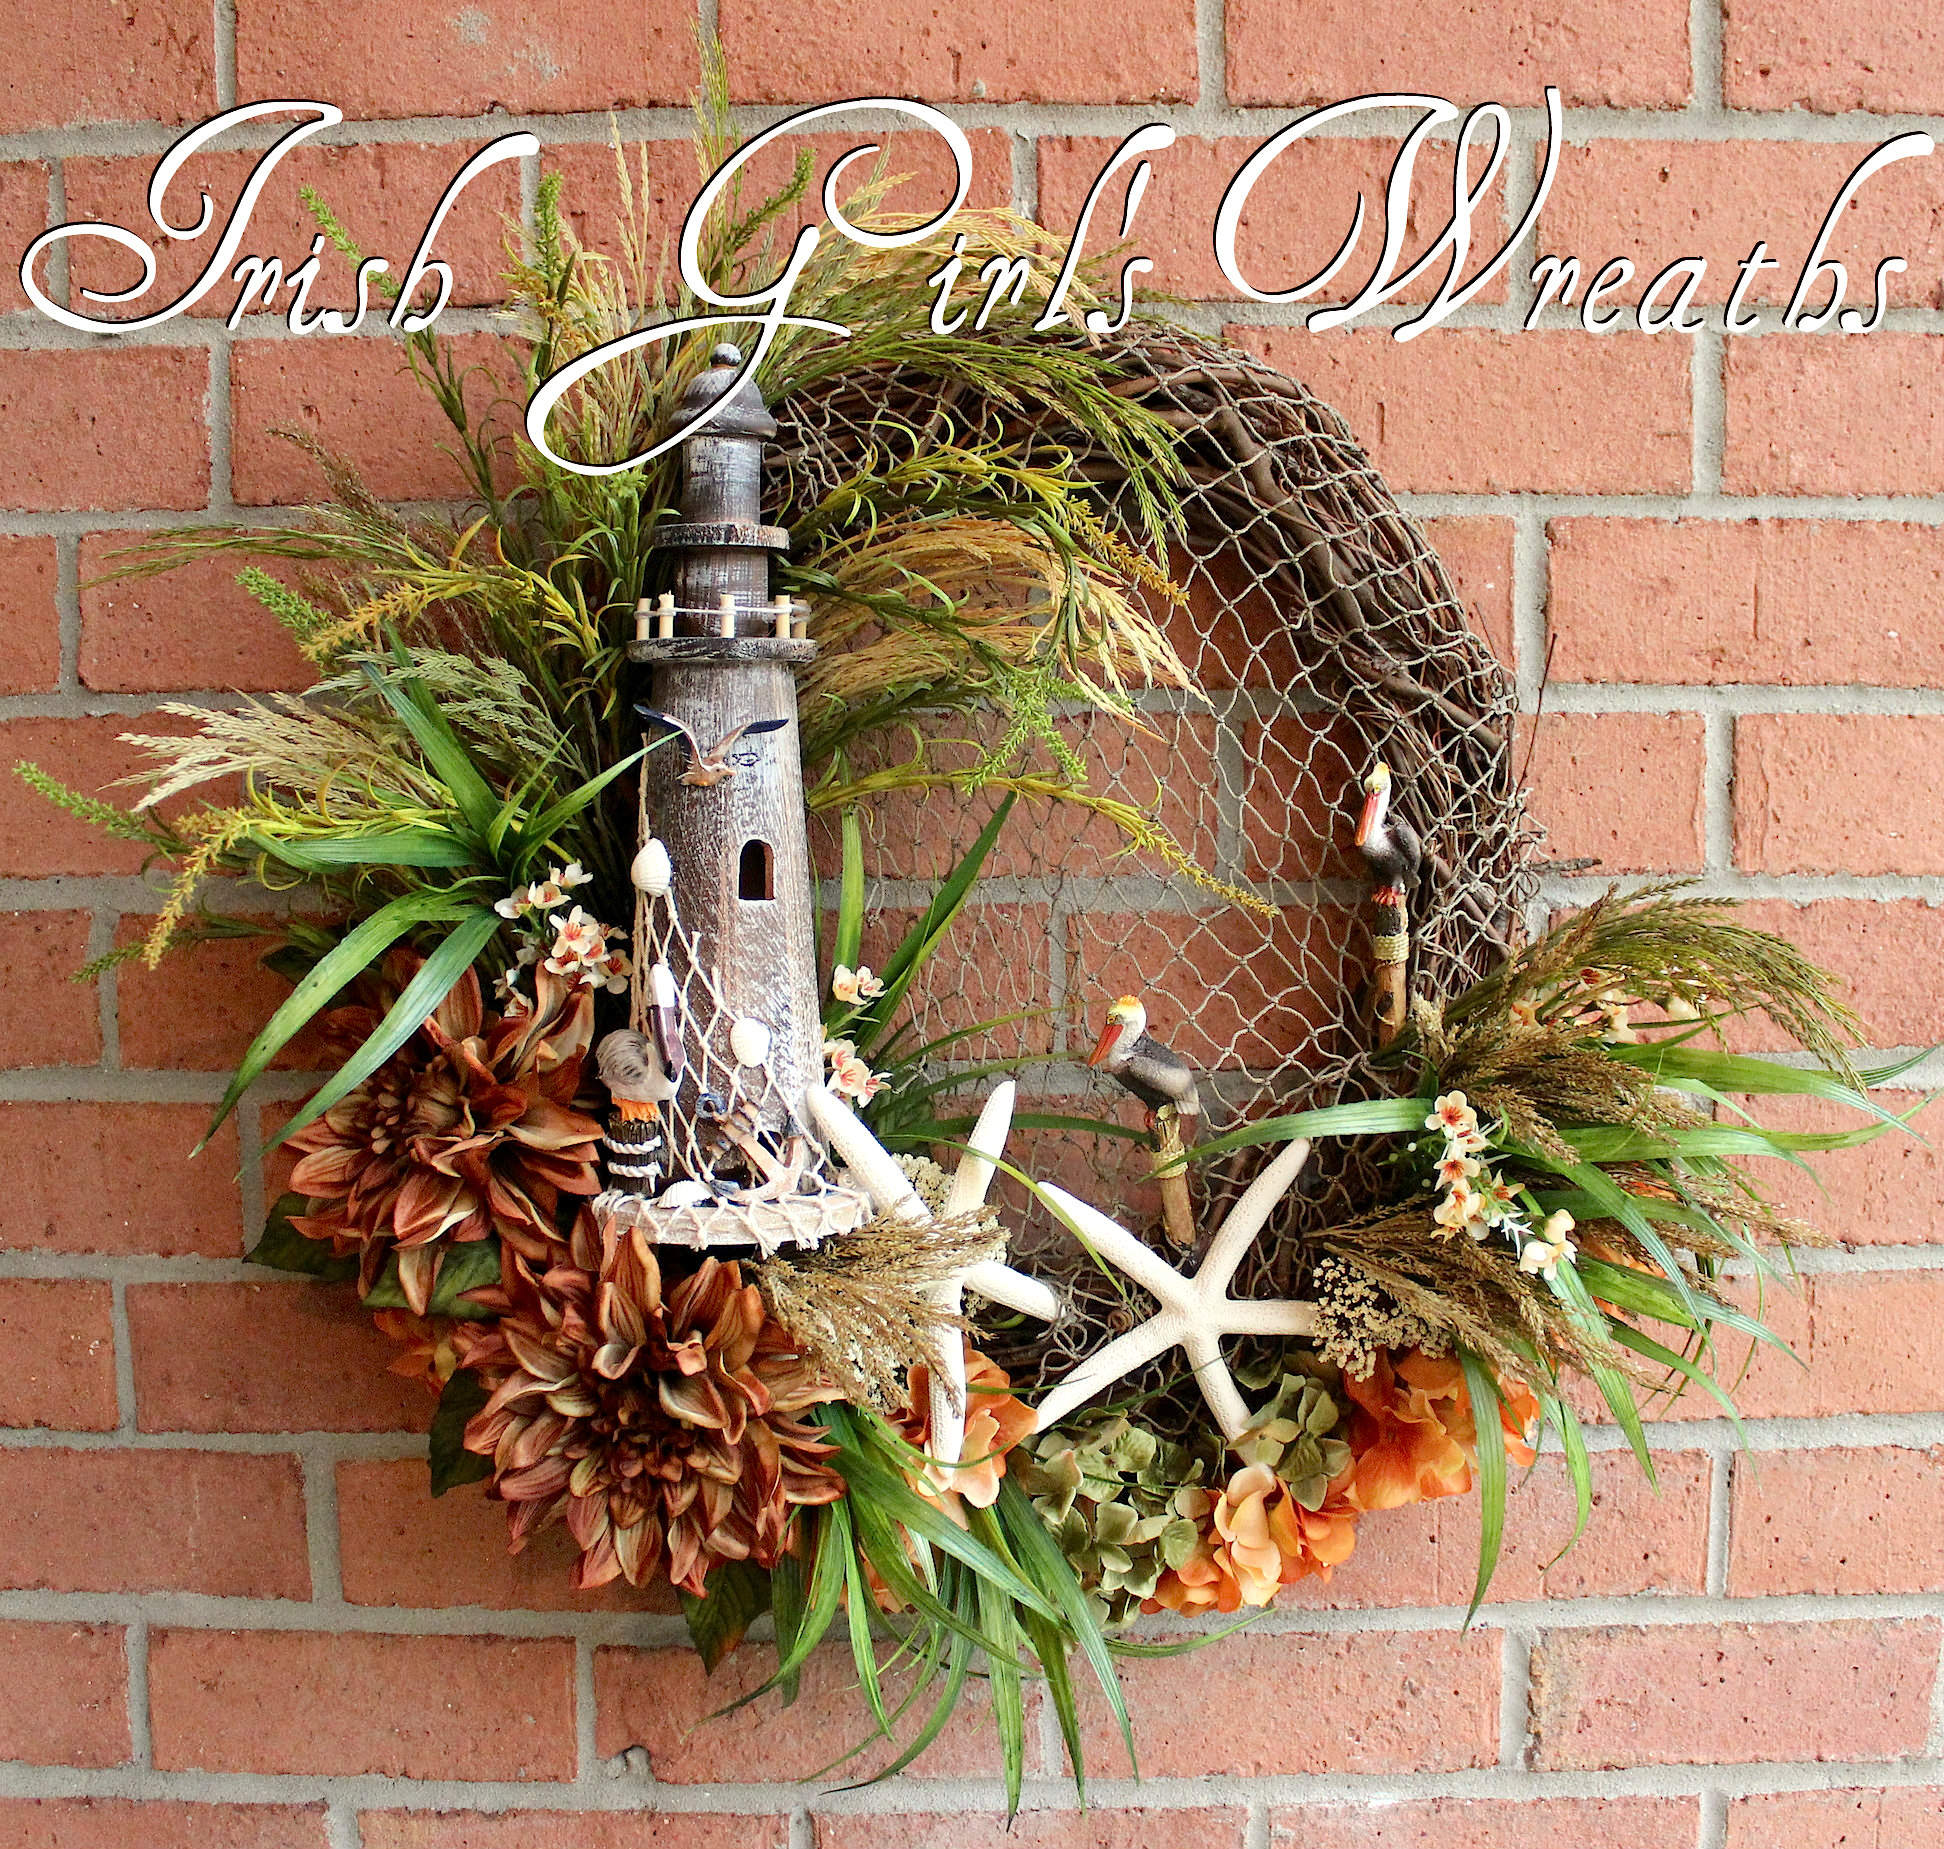 Summer Lighthouse and Starfish Coastal Landscape Wreath, Rustic Nautical Decor